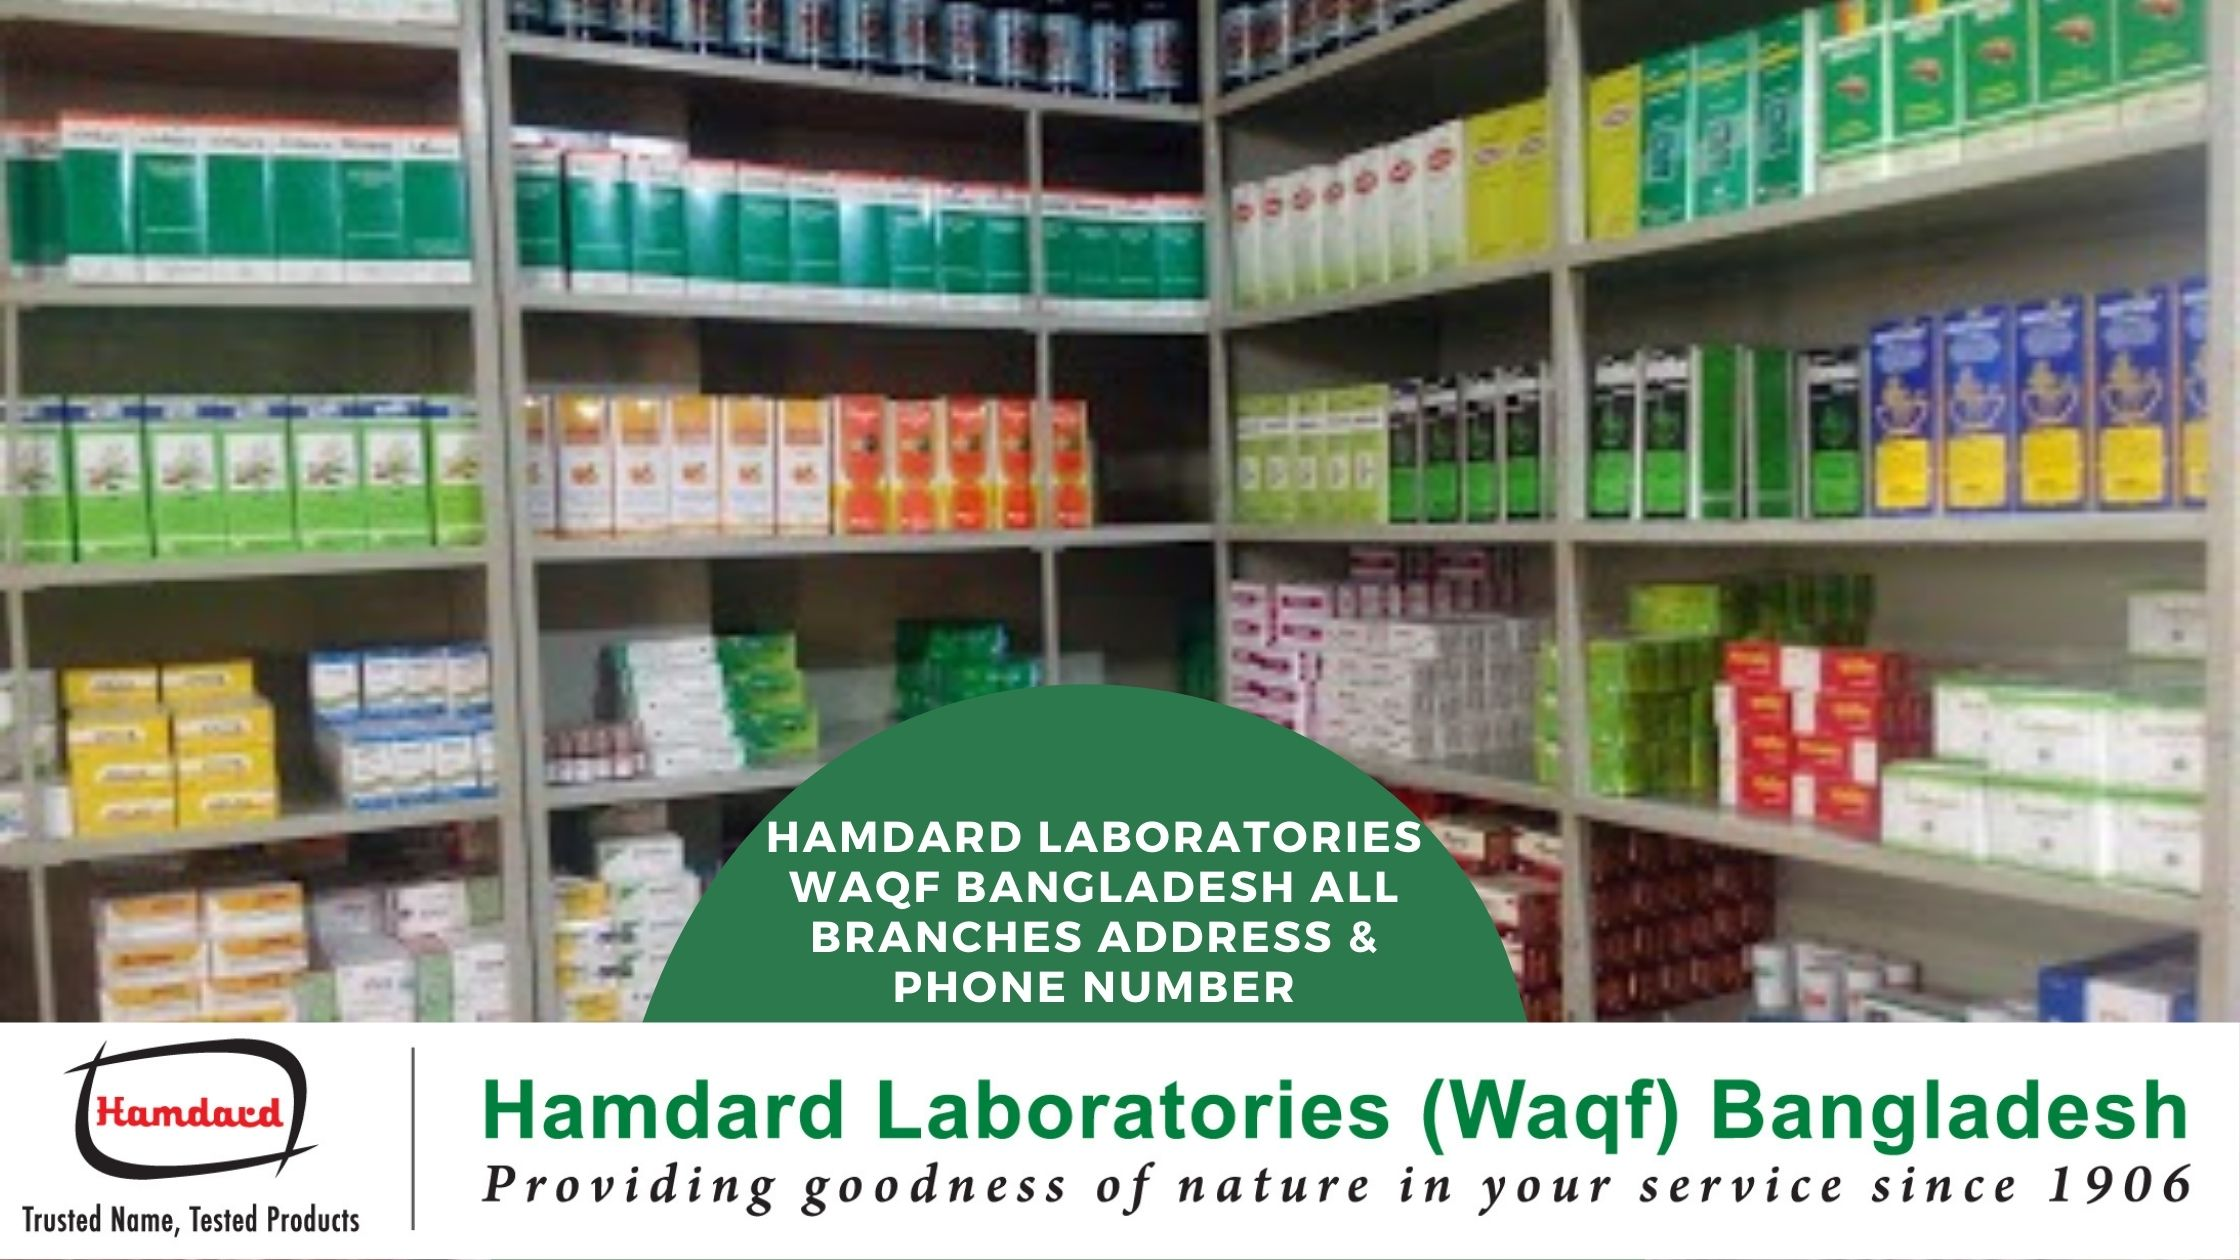 Hamdard laboratories Waqf Bangladesh address & phone number